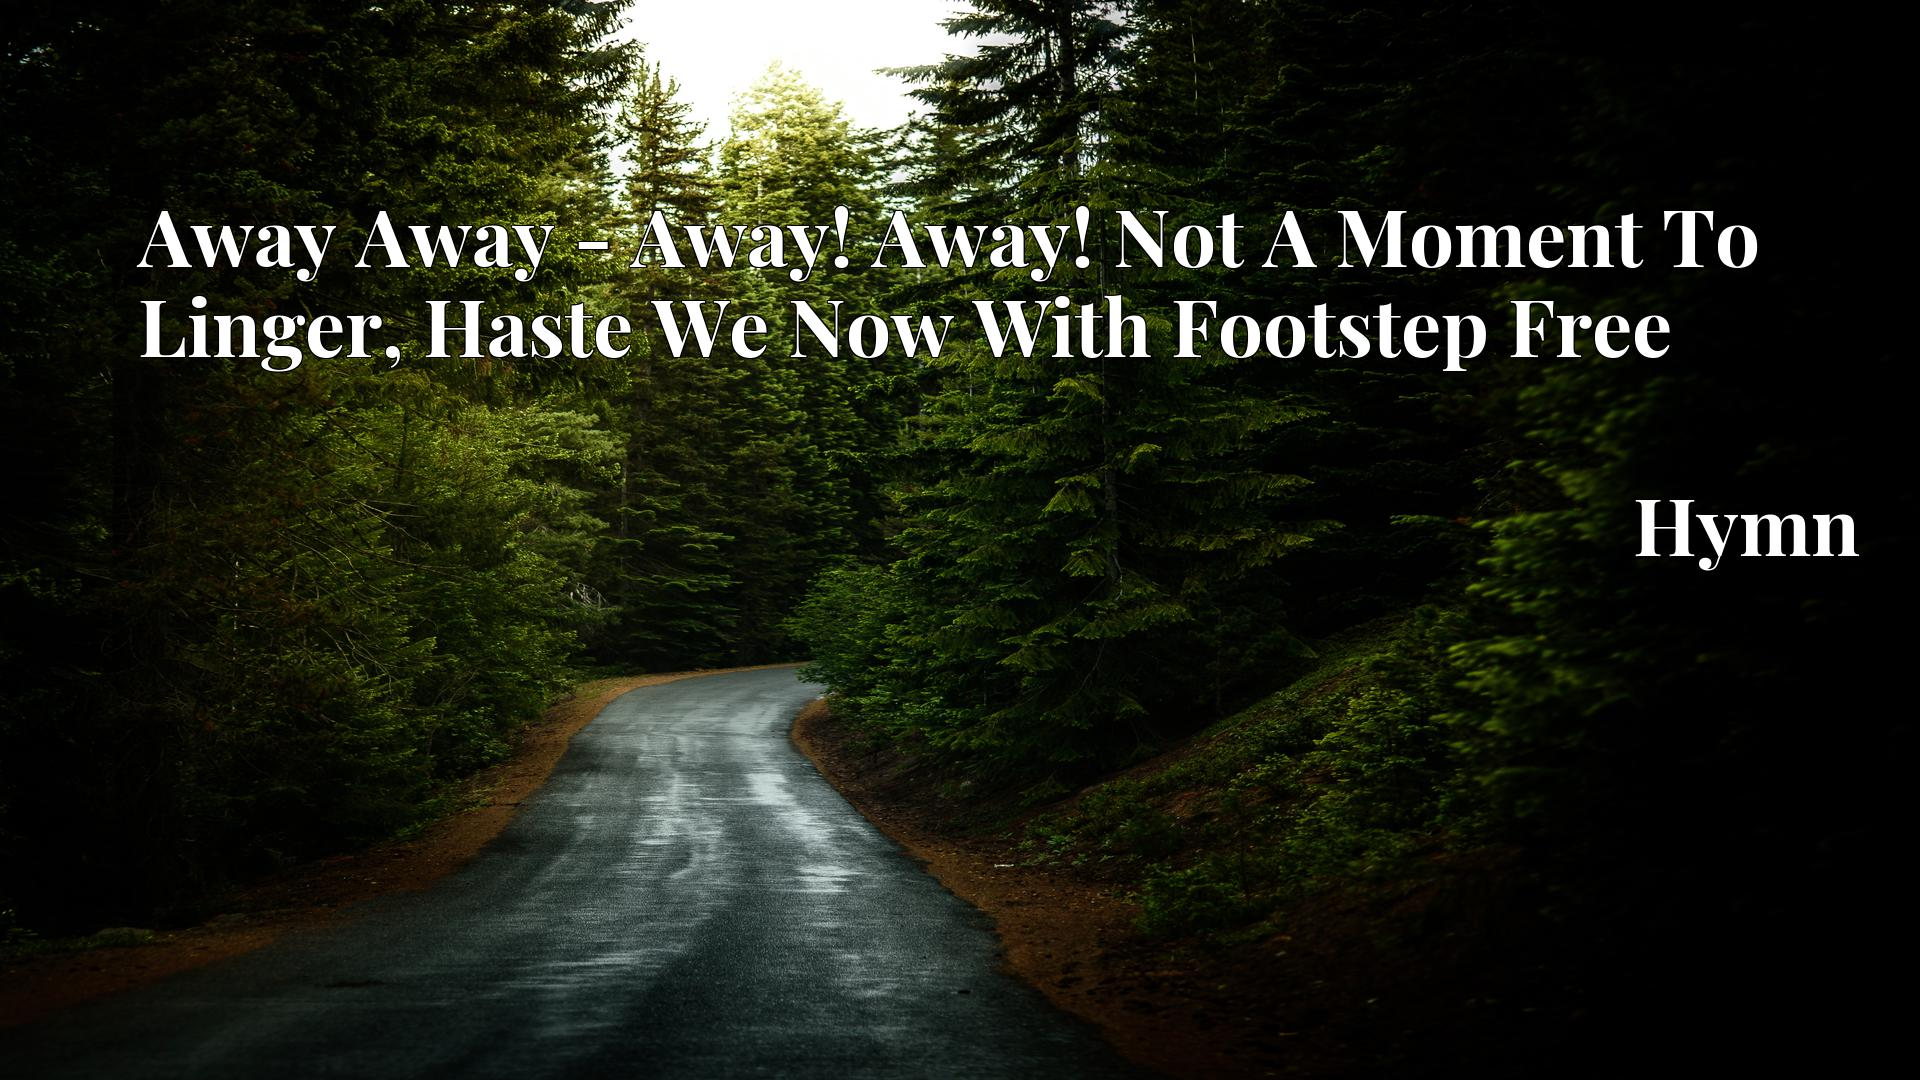 Away Away - Away! Away! Not A Moment To Linger, Haste We Now With Footstep Free - Hymn